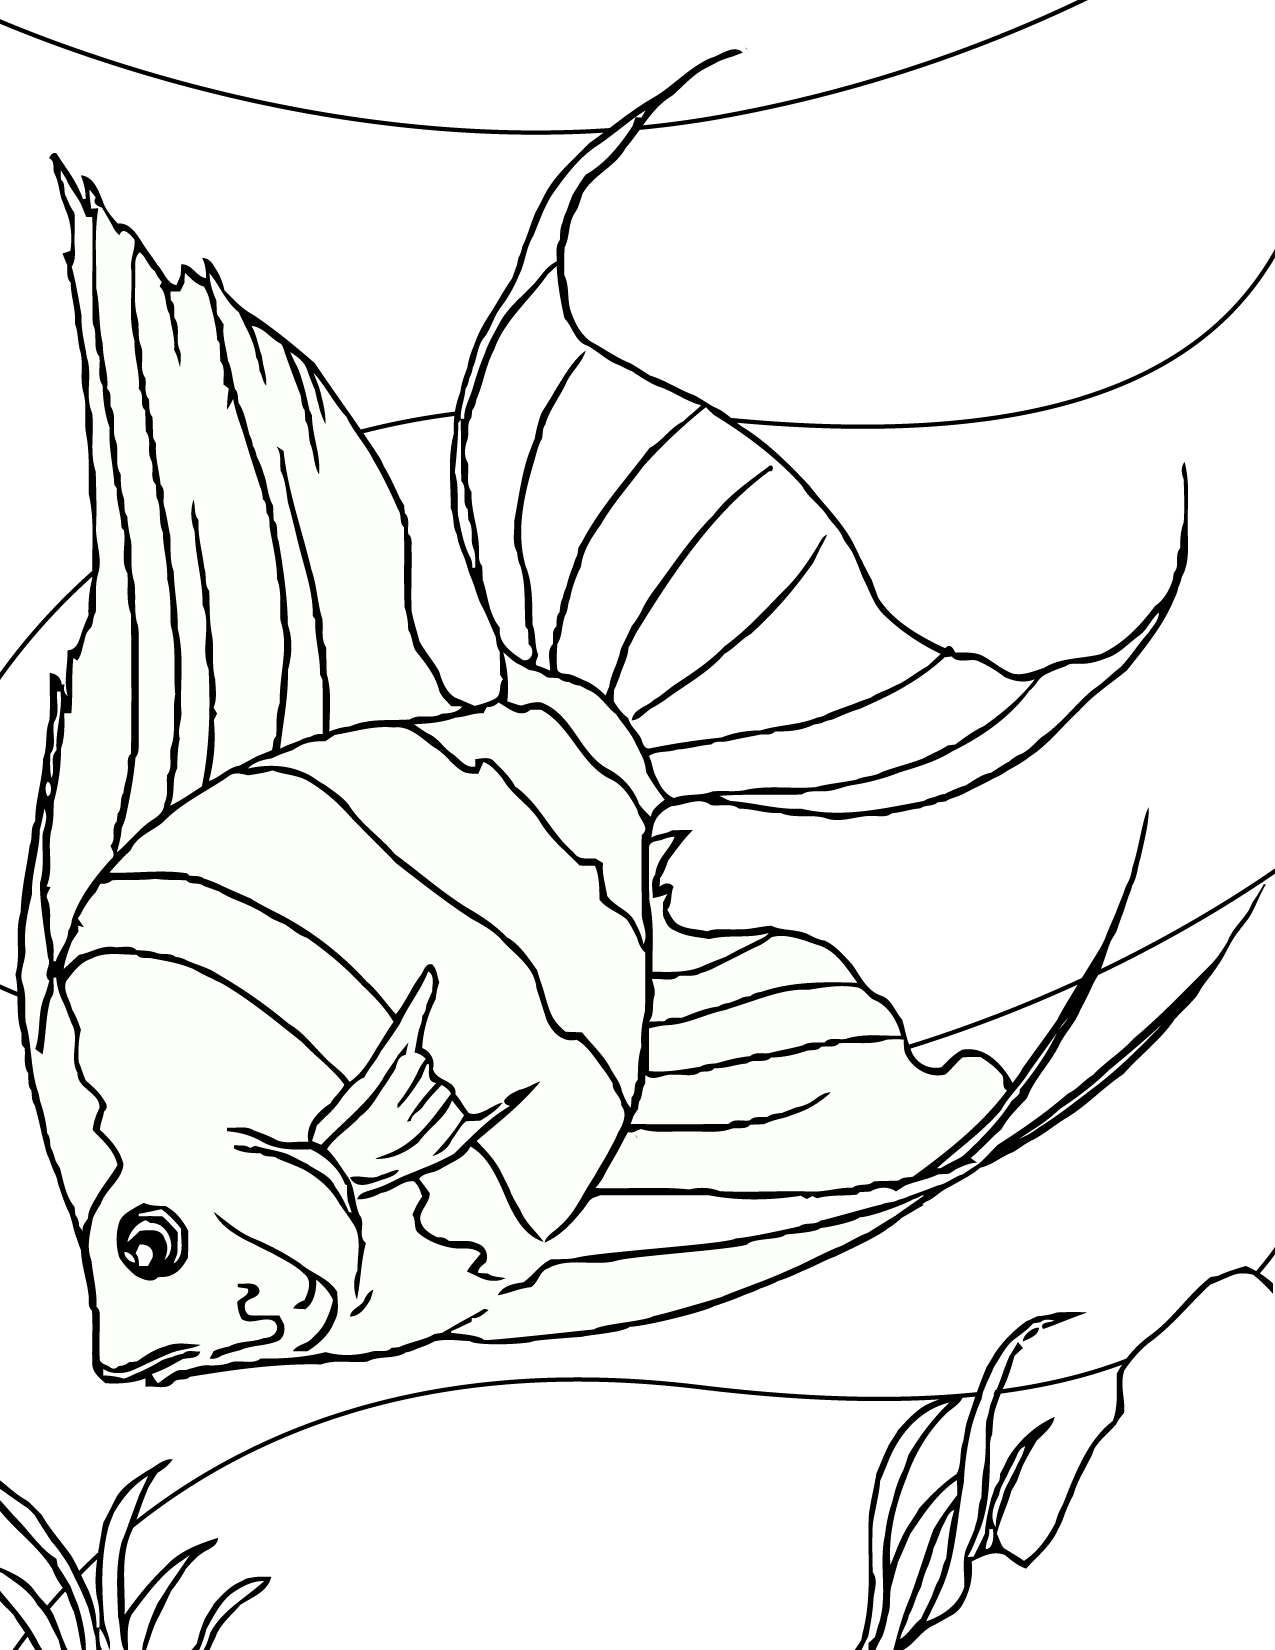 coloring pages of fishing - photo#14